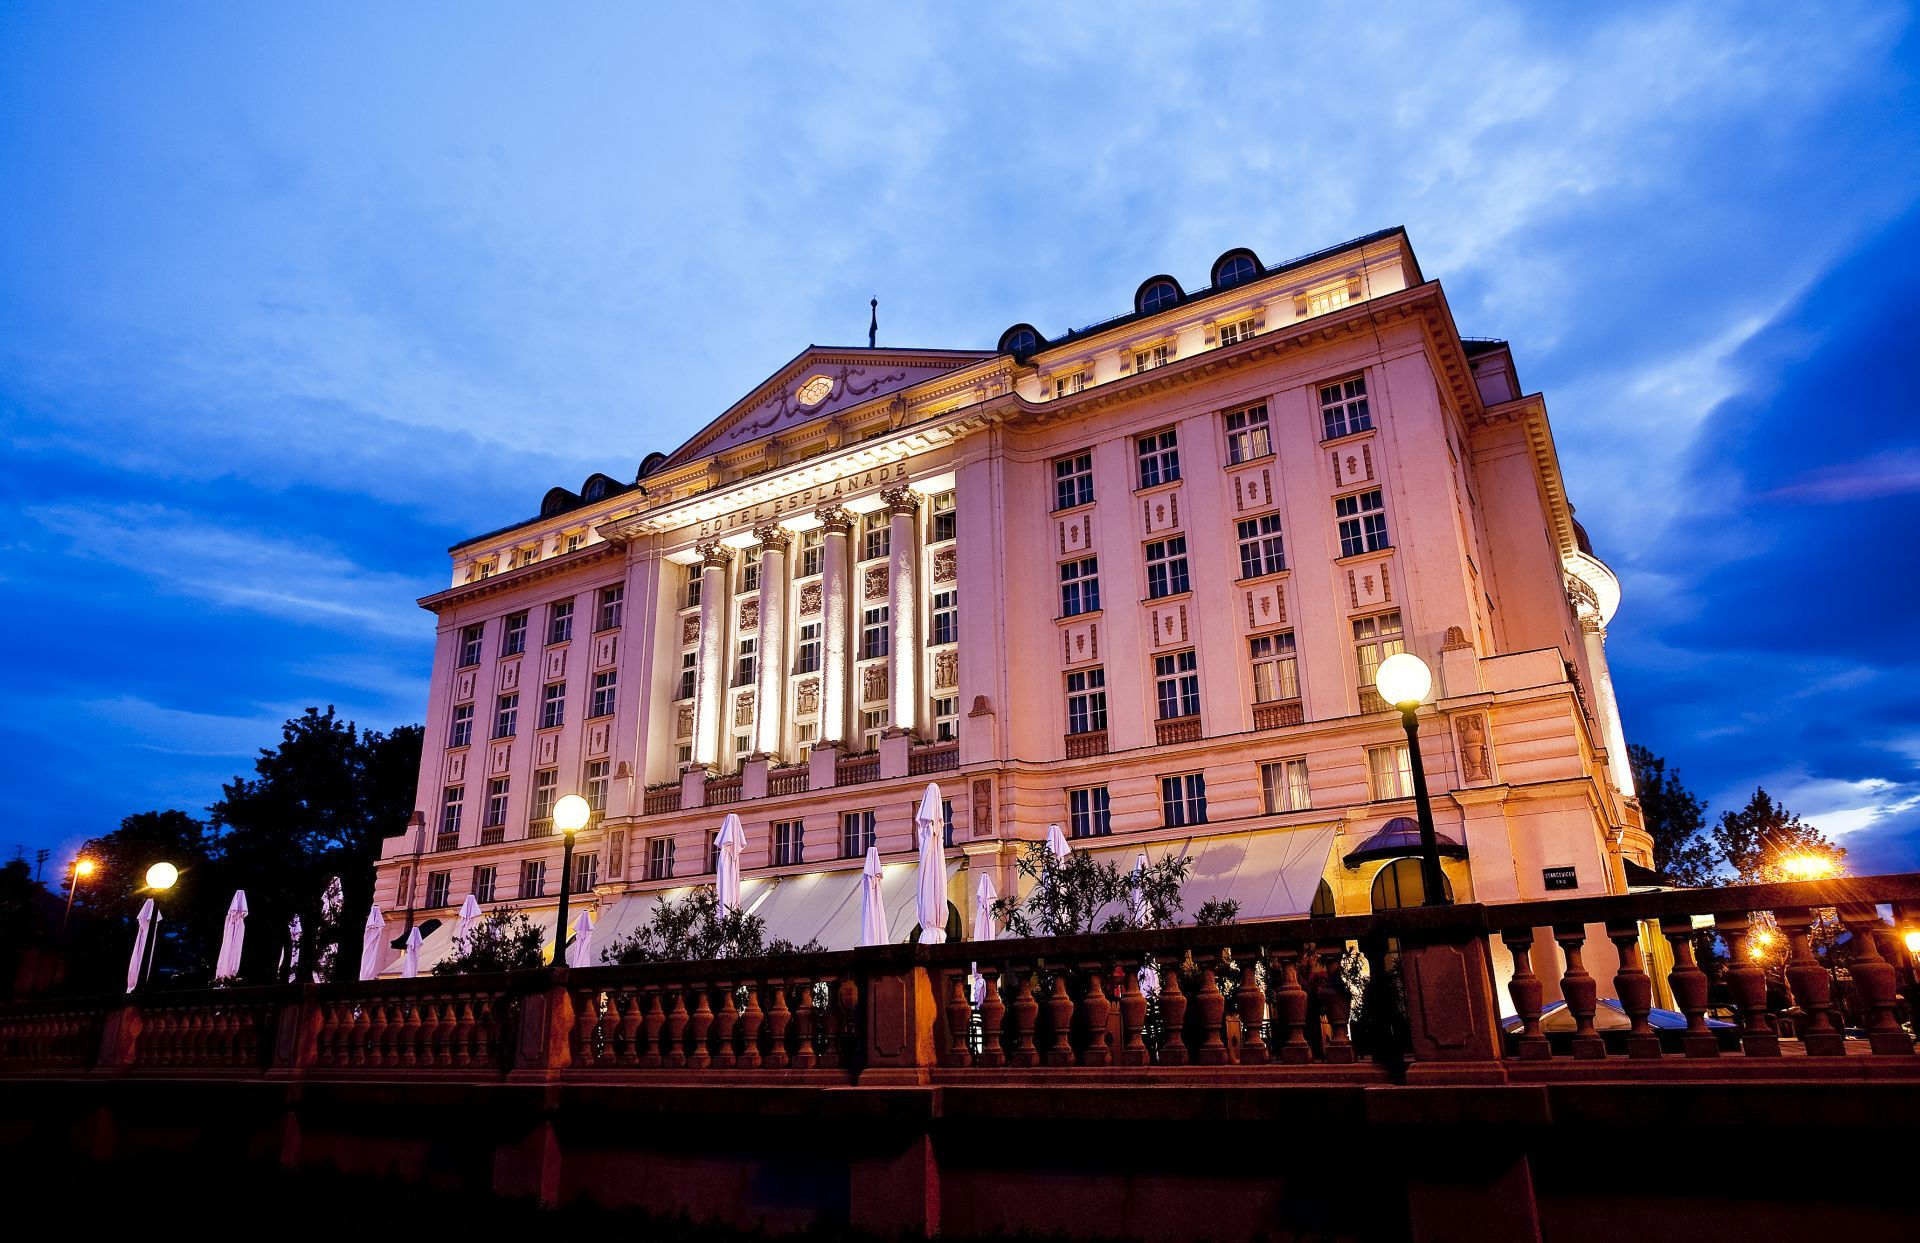 A Luxury Hotel Located In Croatia-Esplanade Zagreb Hotel